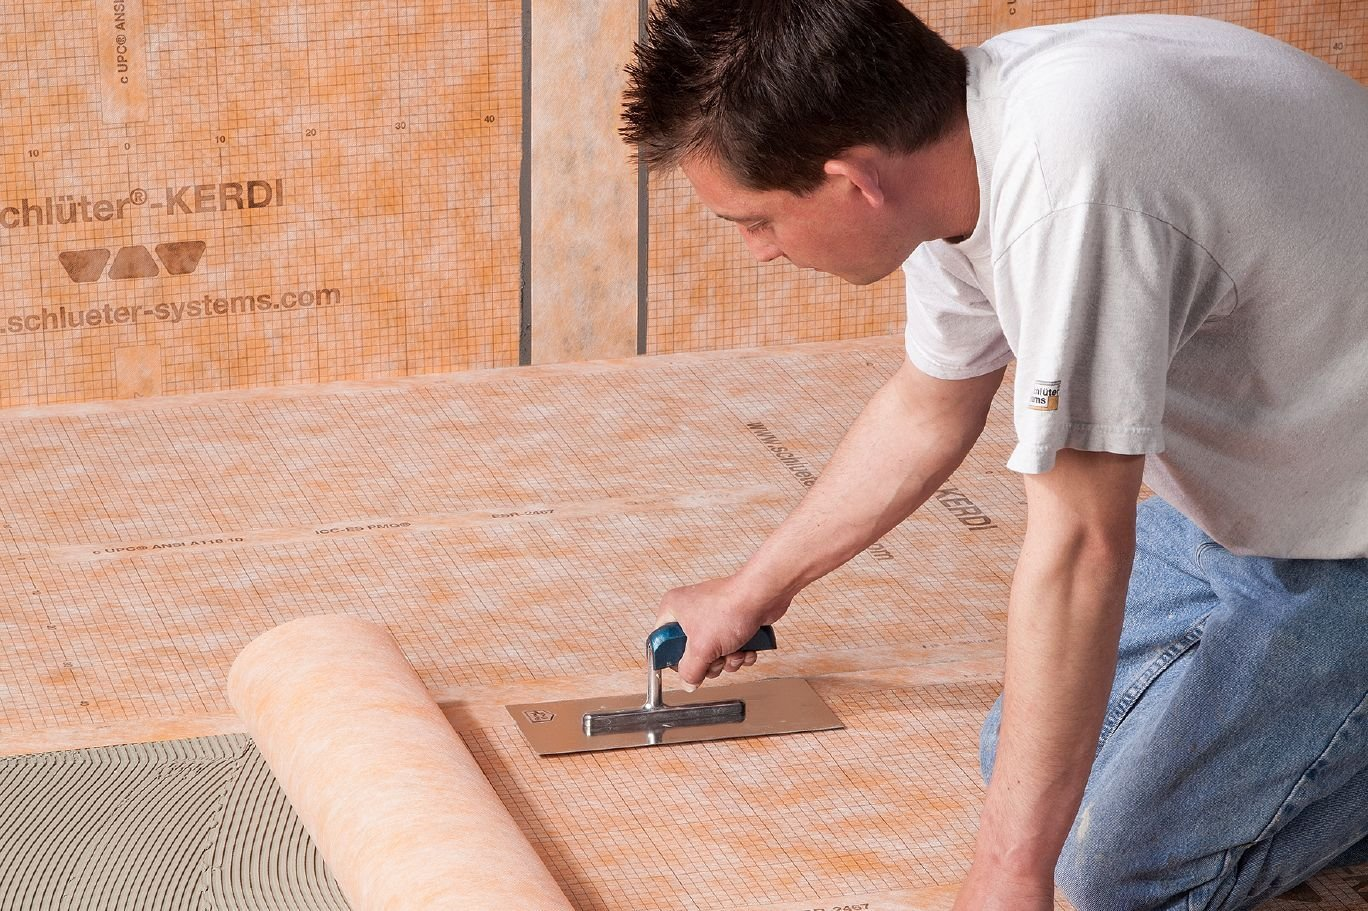 Schluter Kerdi 108 Sq Ft Waterproofing Membrane by Kerdi